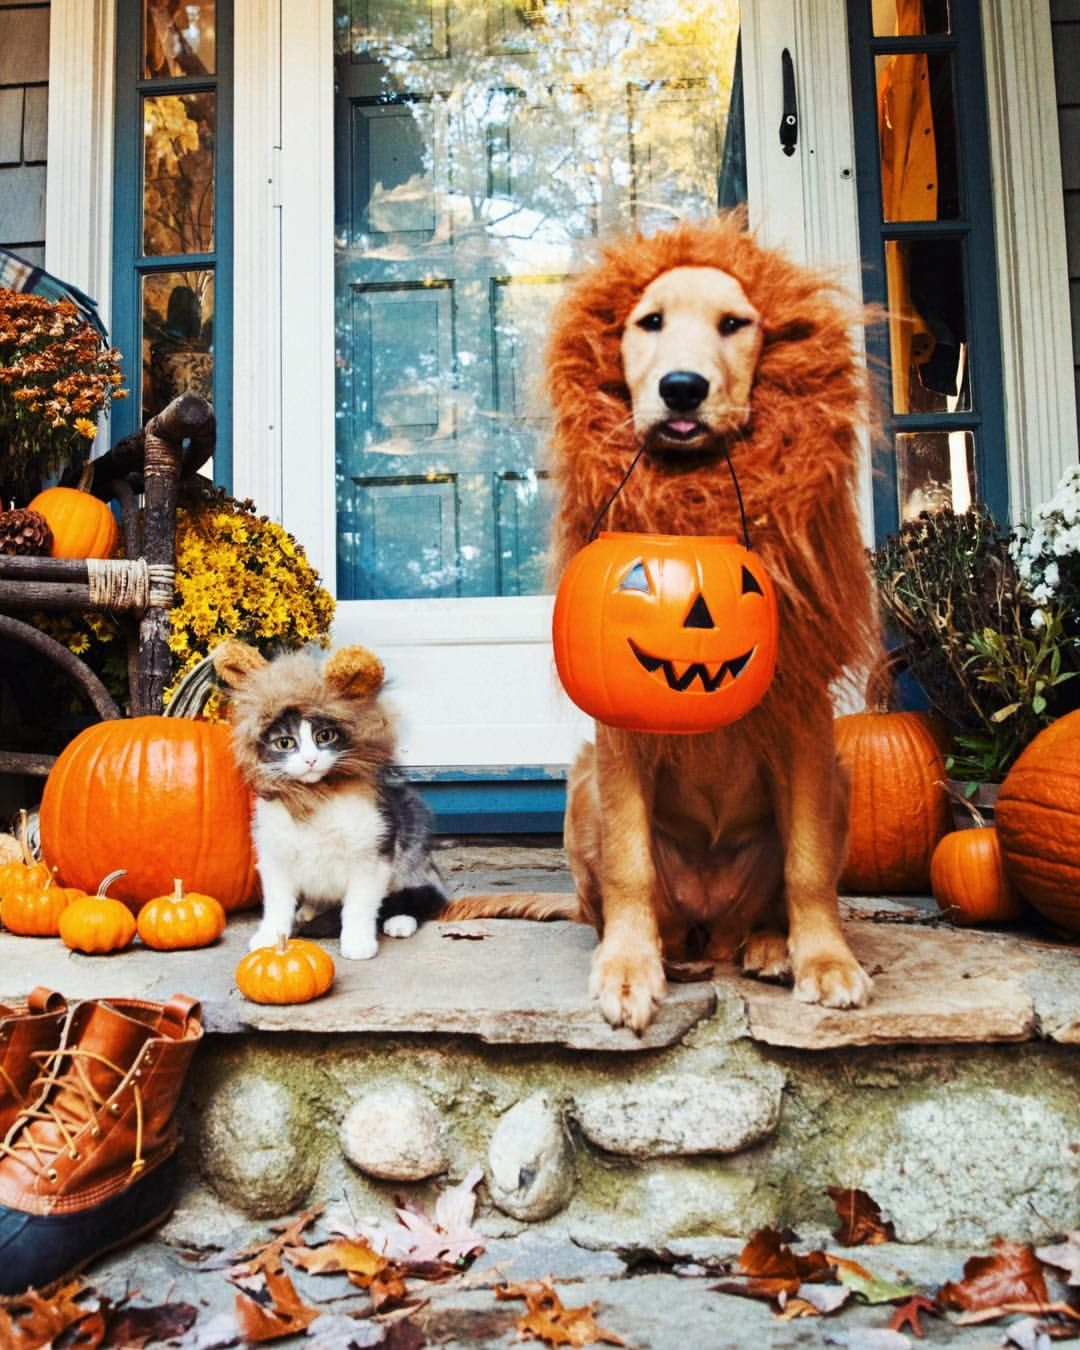 Pin by Southern Girl on Halloween Halloween animals